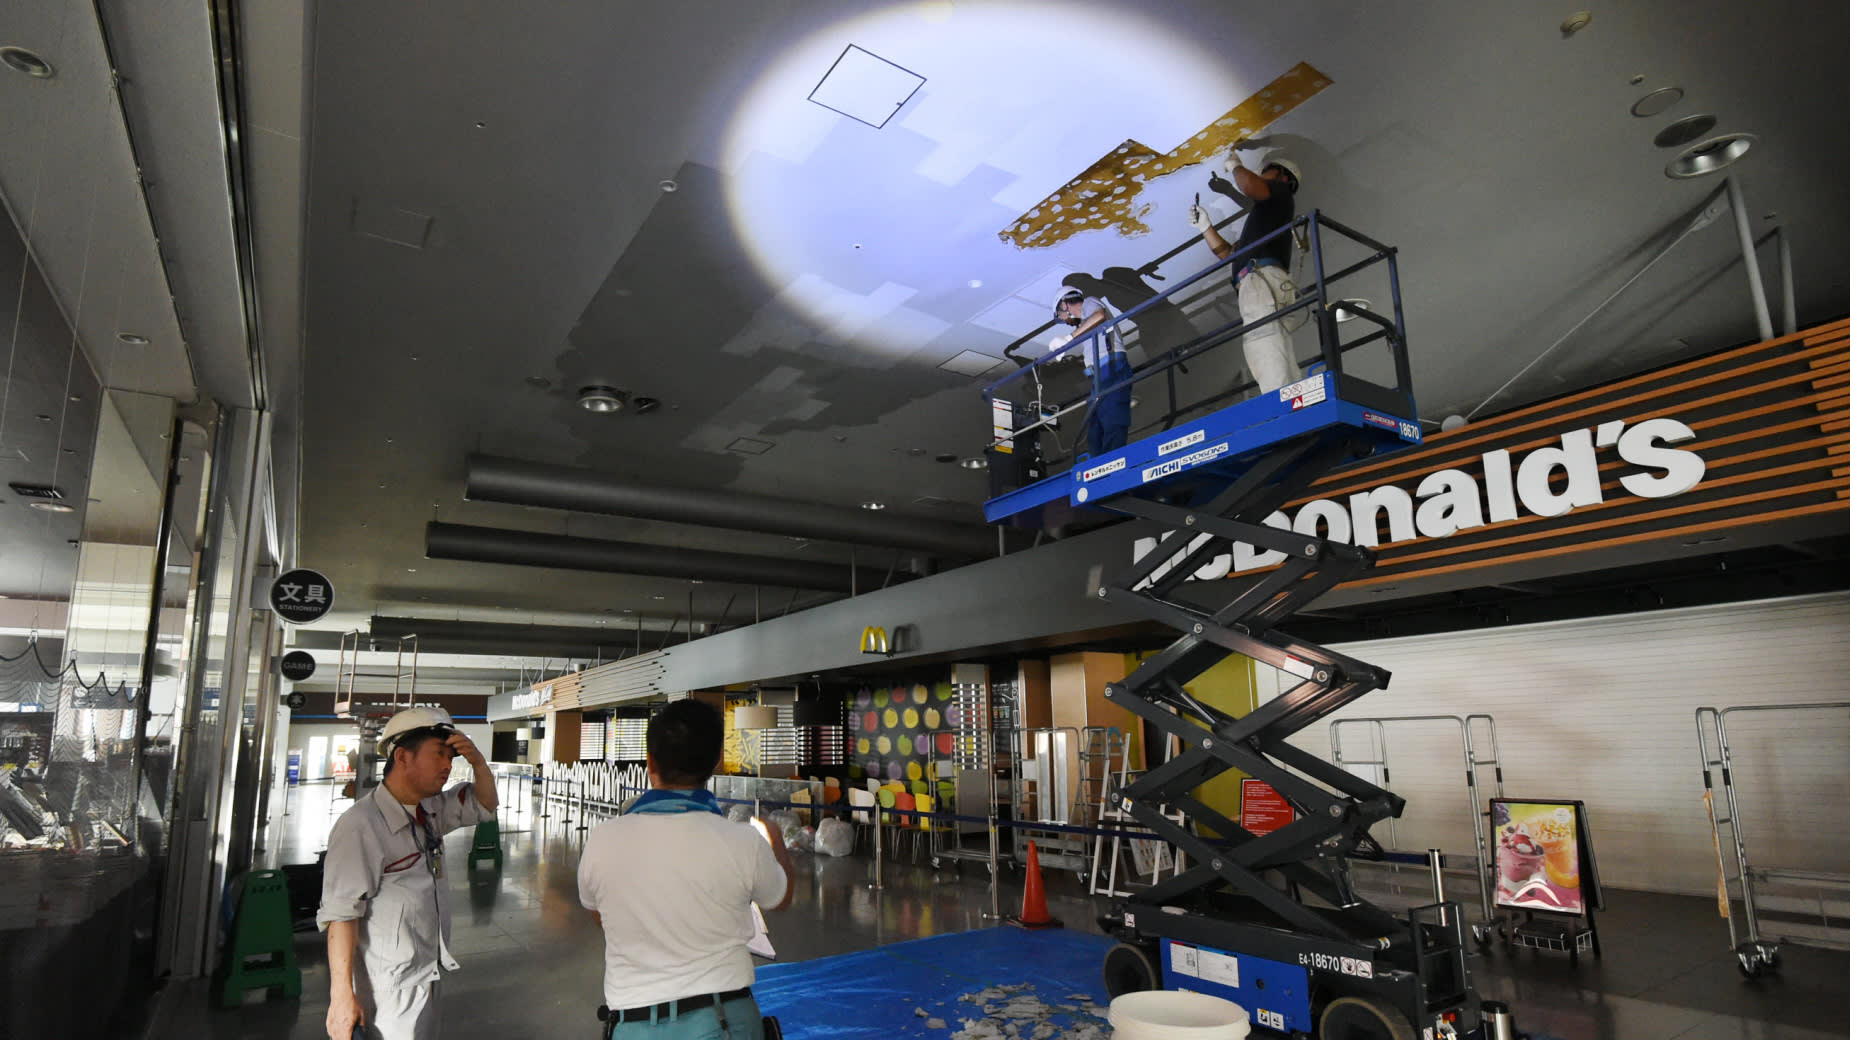 Workers fix a ceiling in Terminal 1 of Kansai International Airport, damaged heavily by Typhoon Jebi. (Photo by Tomoki Mera)